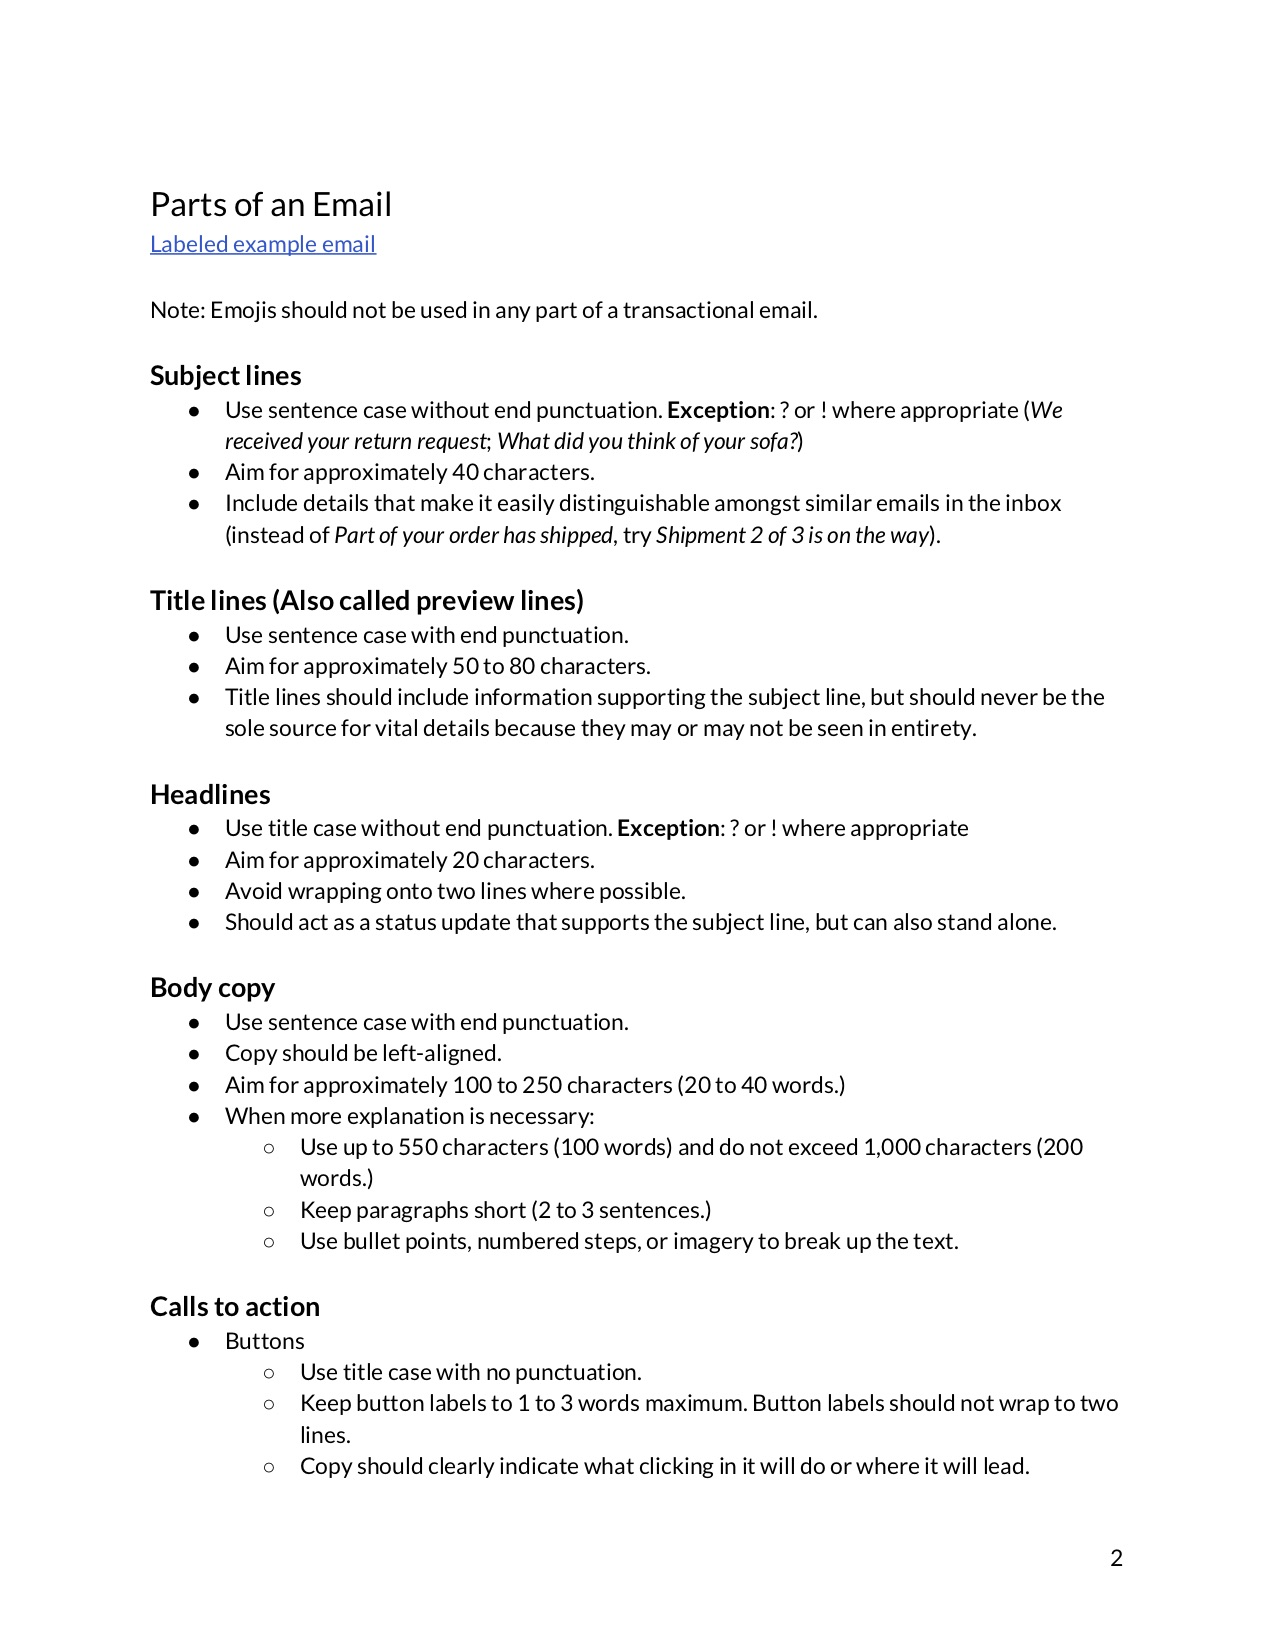 second page of a content guide document that explains the parts of an email